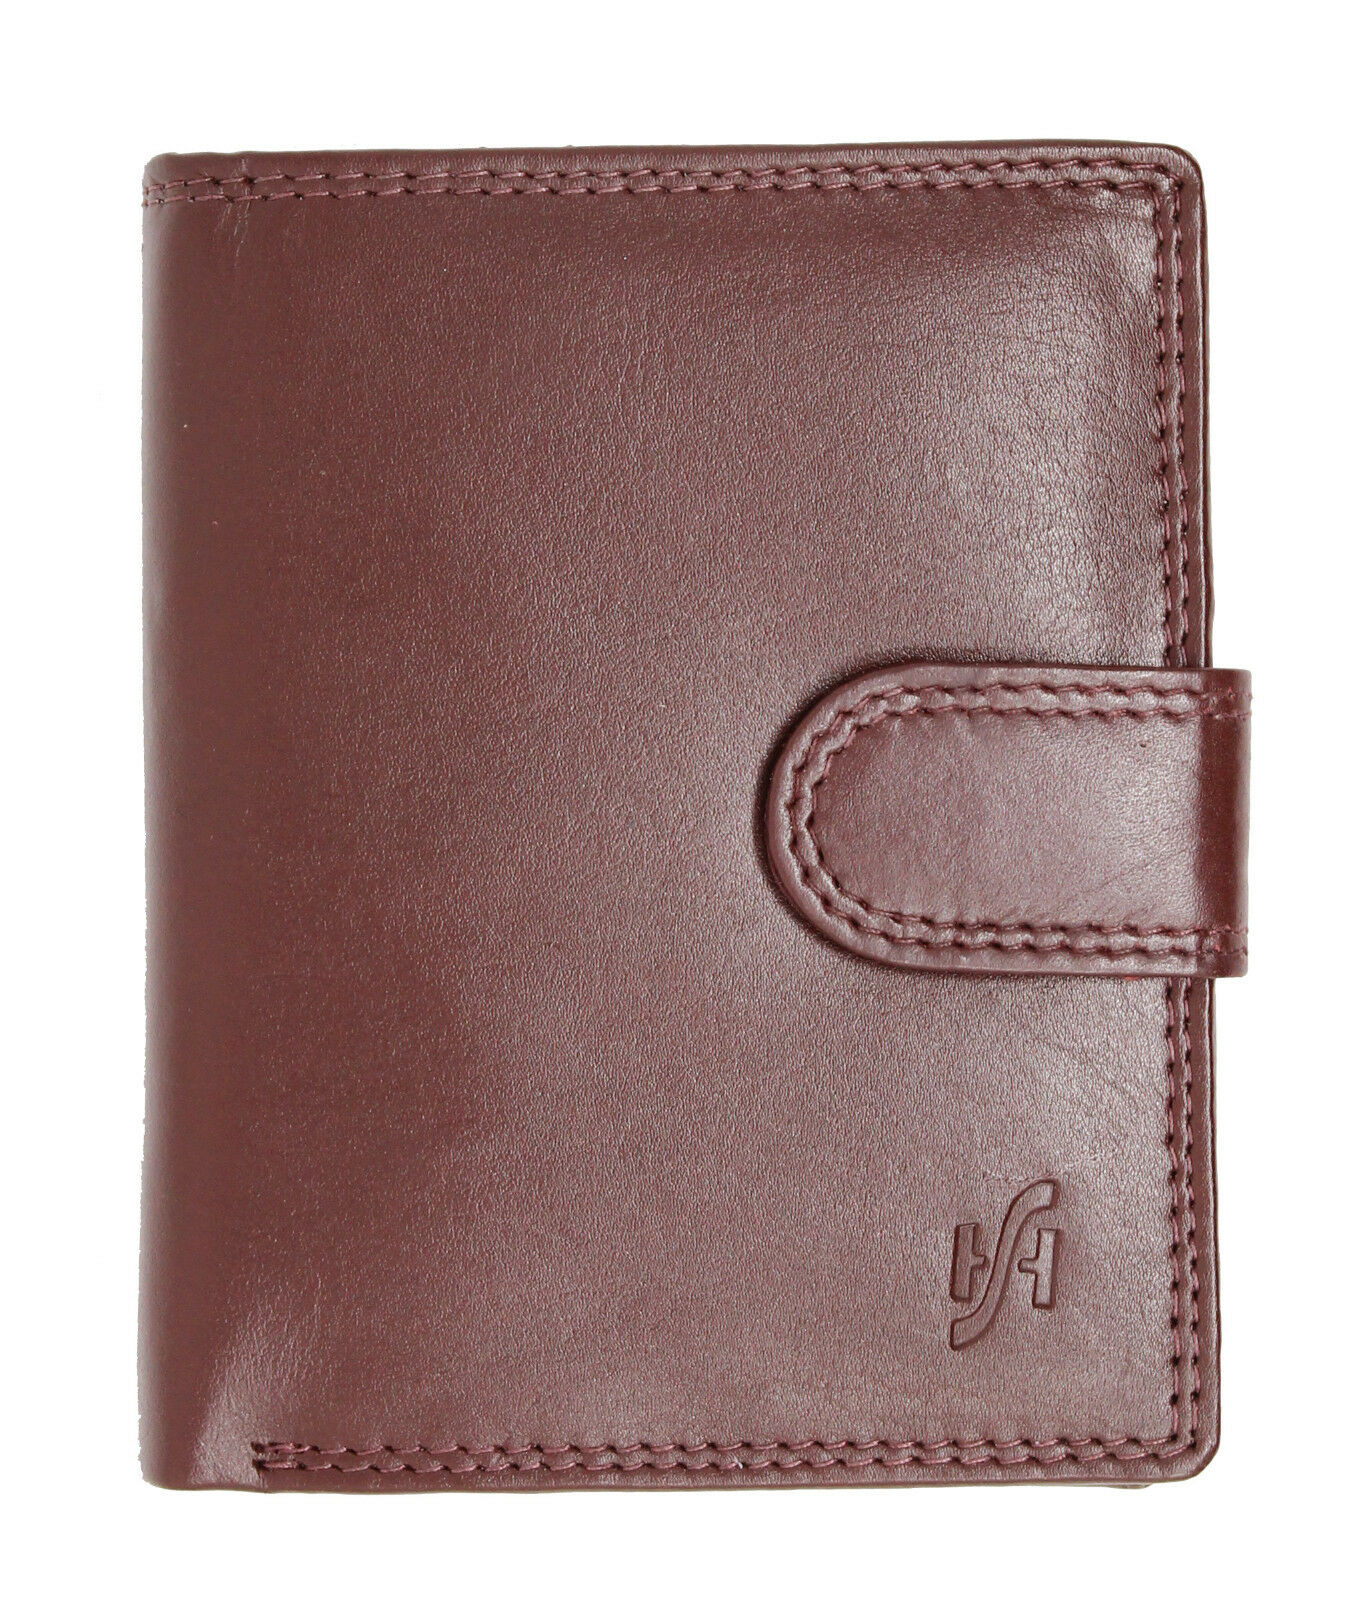 Unisex Genuine Soft Leather Wallet With Coin Purse Brown